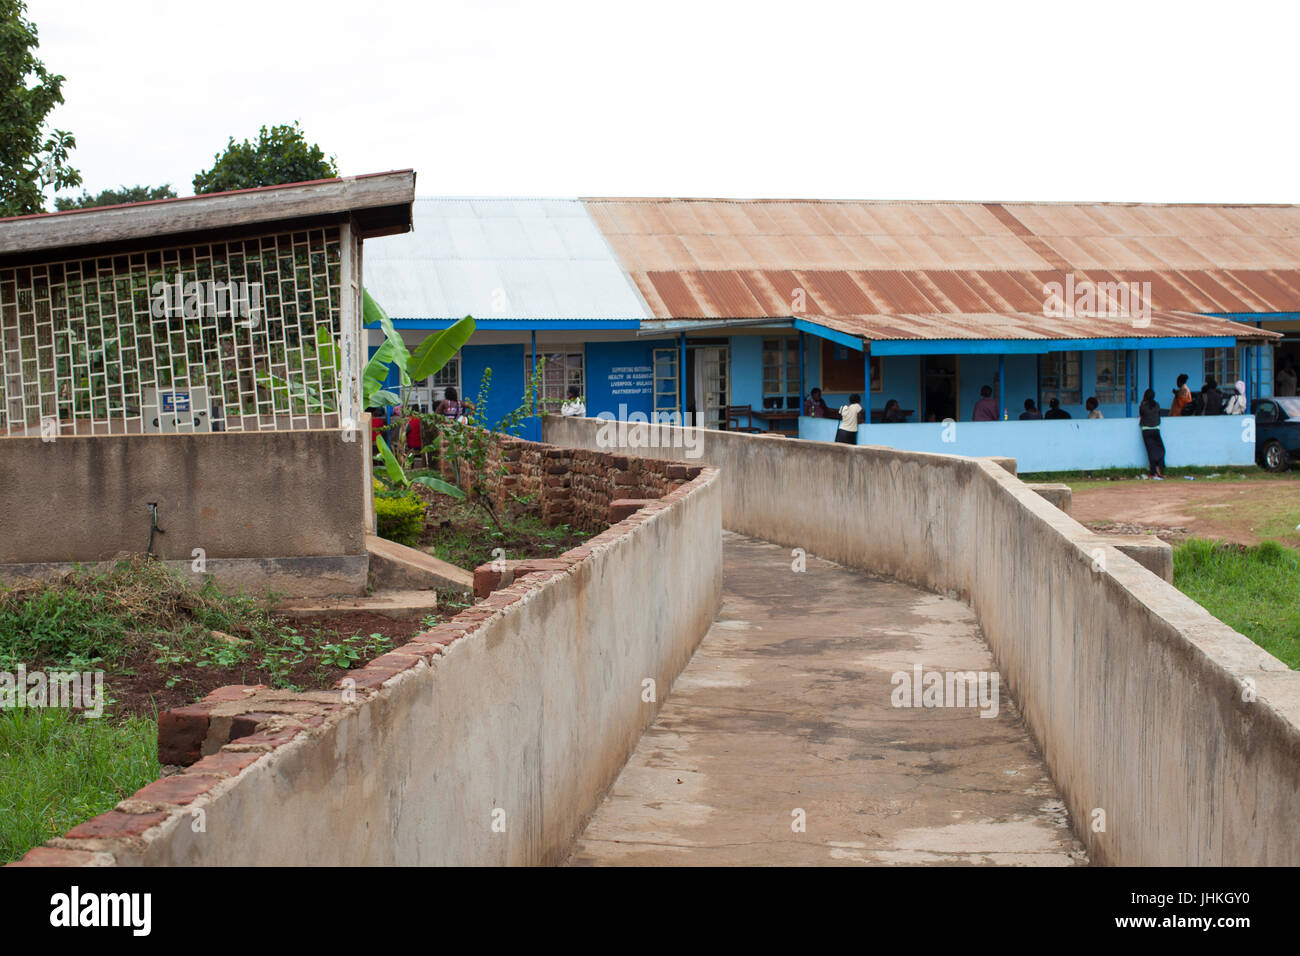 A new concrete ramp has been built connecting the delivery suite to the maternity ward allowing easier access for - Stock Image